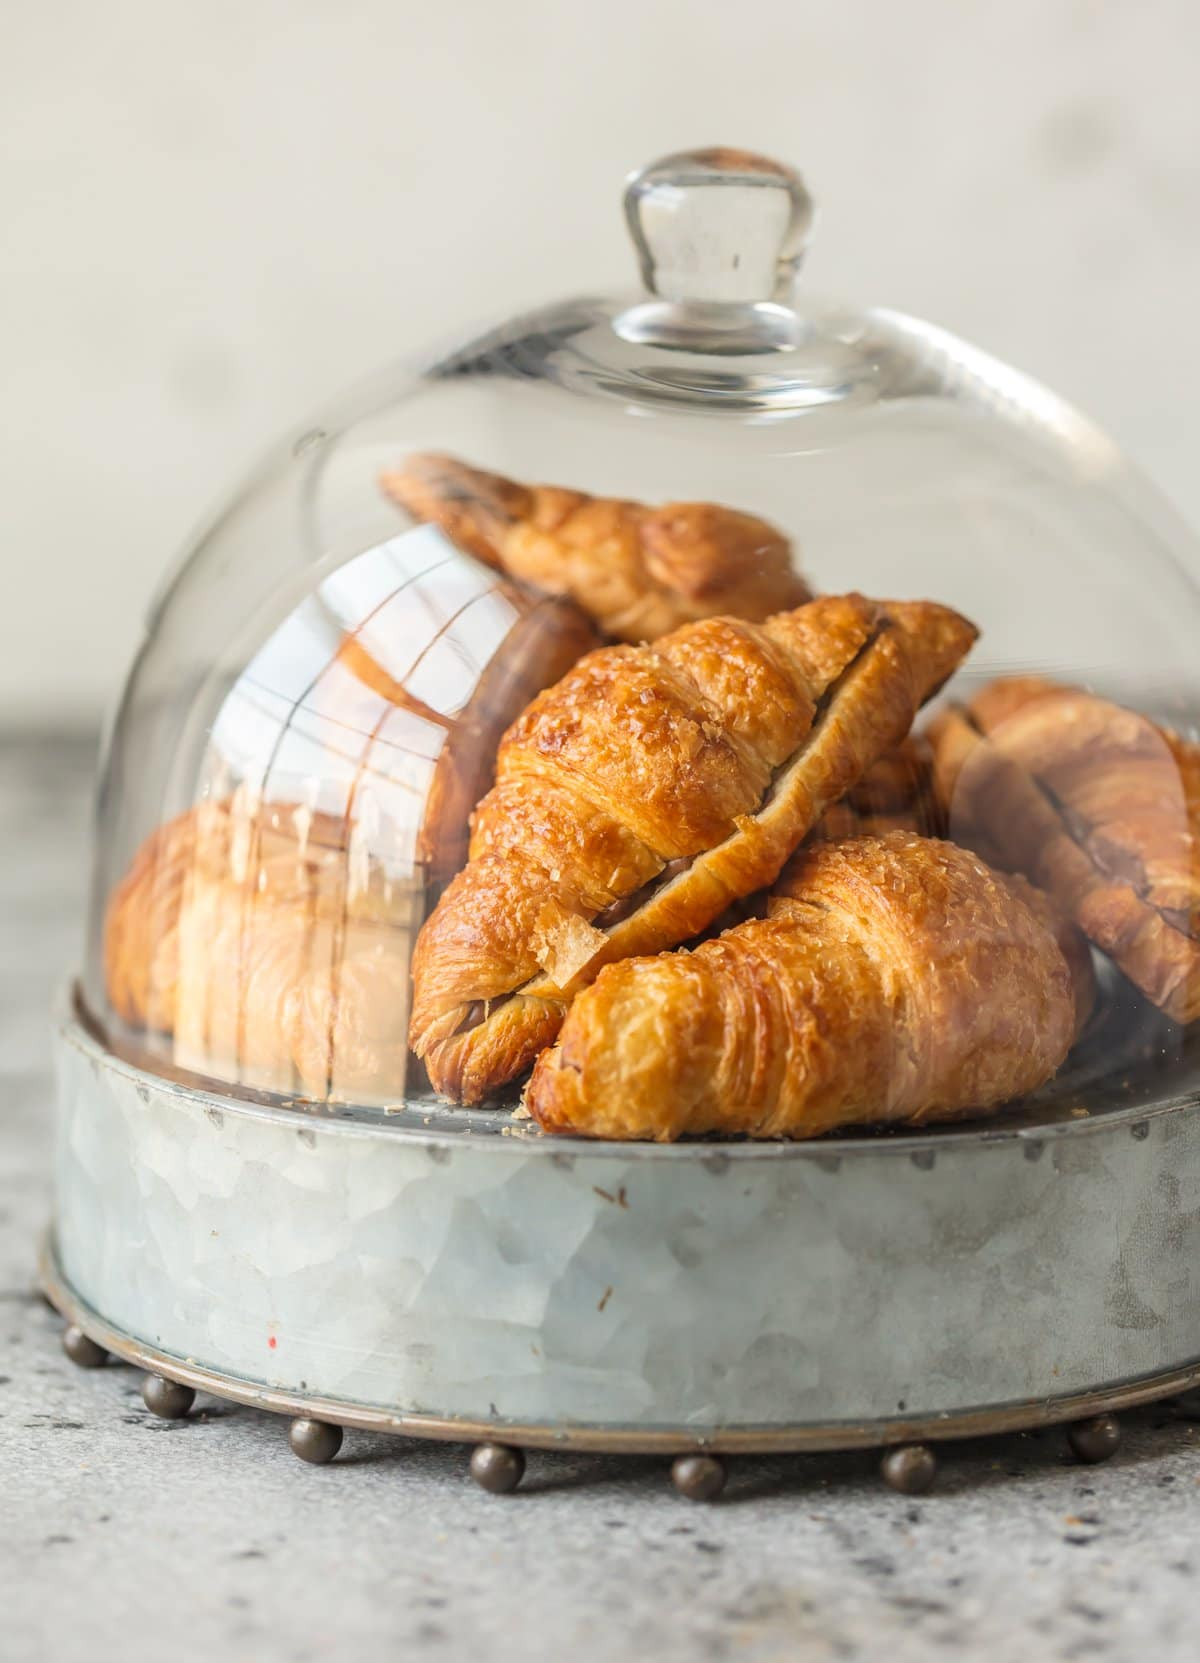 Chocolate croissants in a glass case